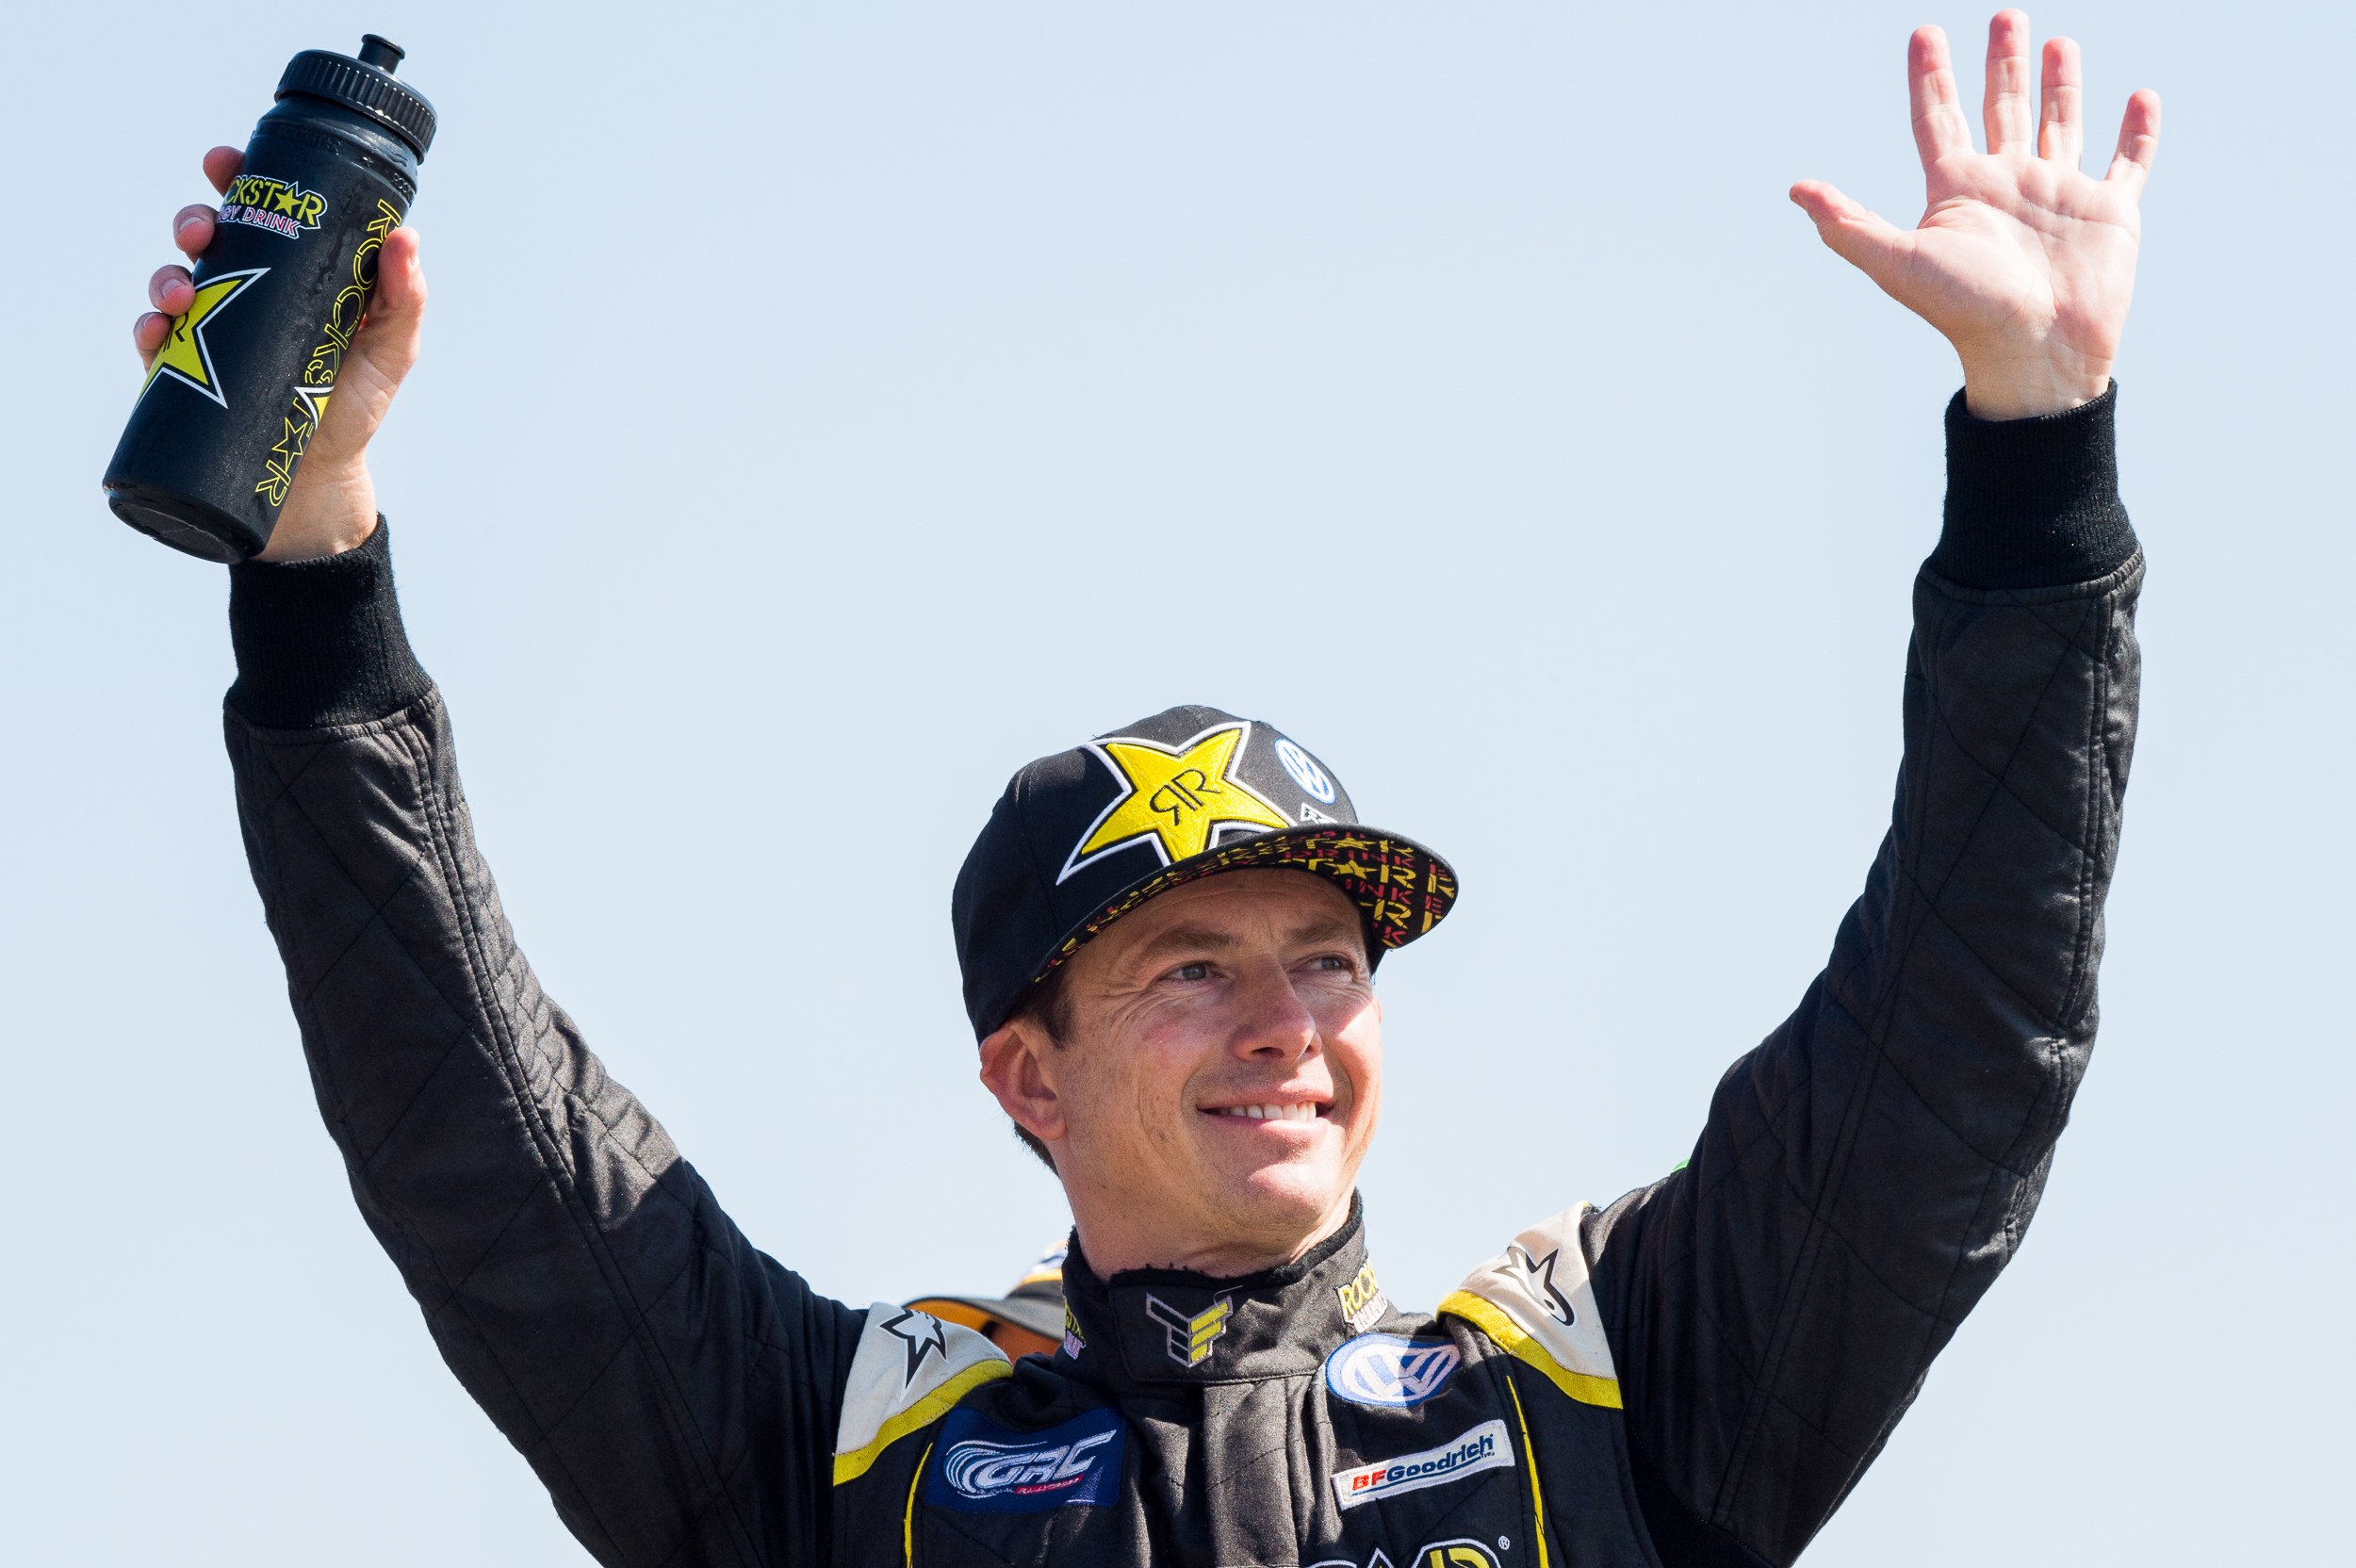 2017 Red Bull GRC Los Angeles Race Champion: Tanner Foust    Volkswagen Andretti Rallycross